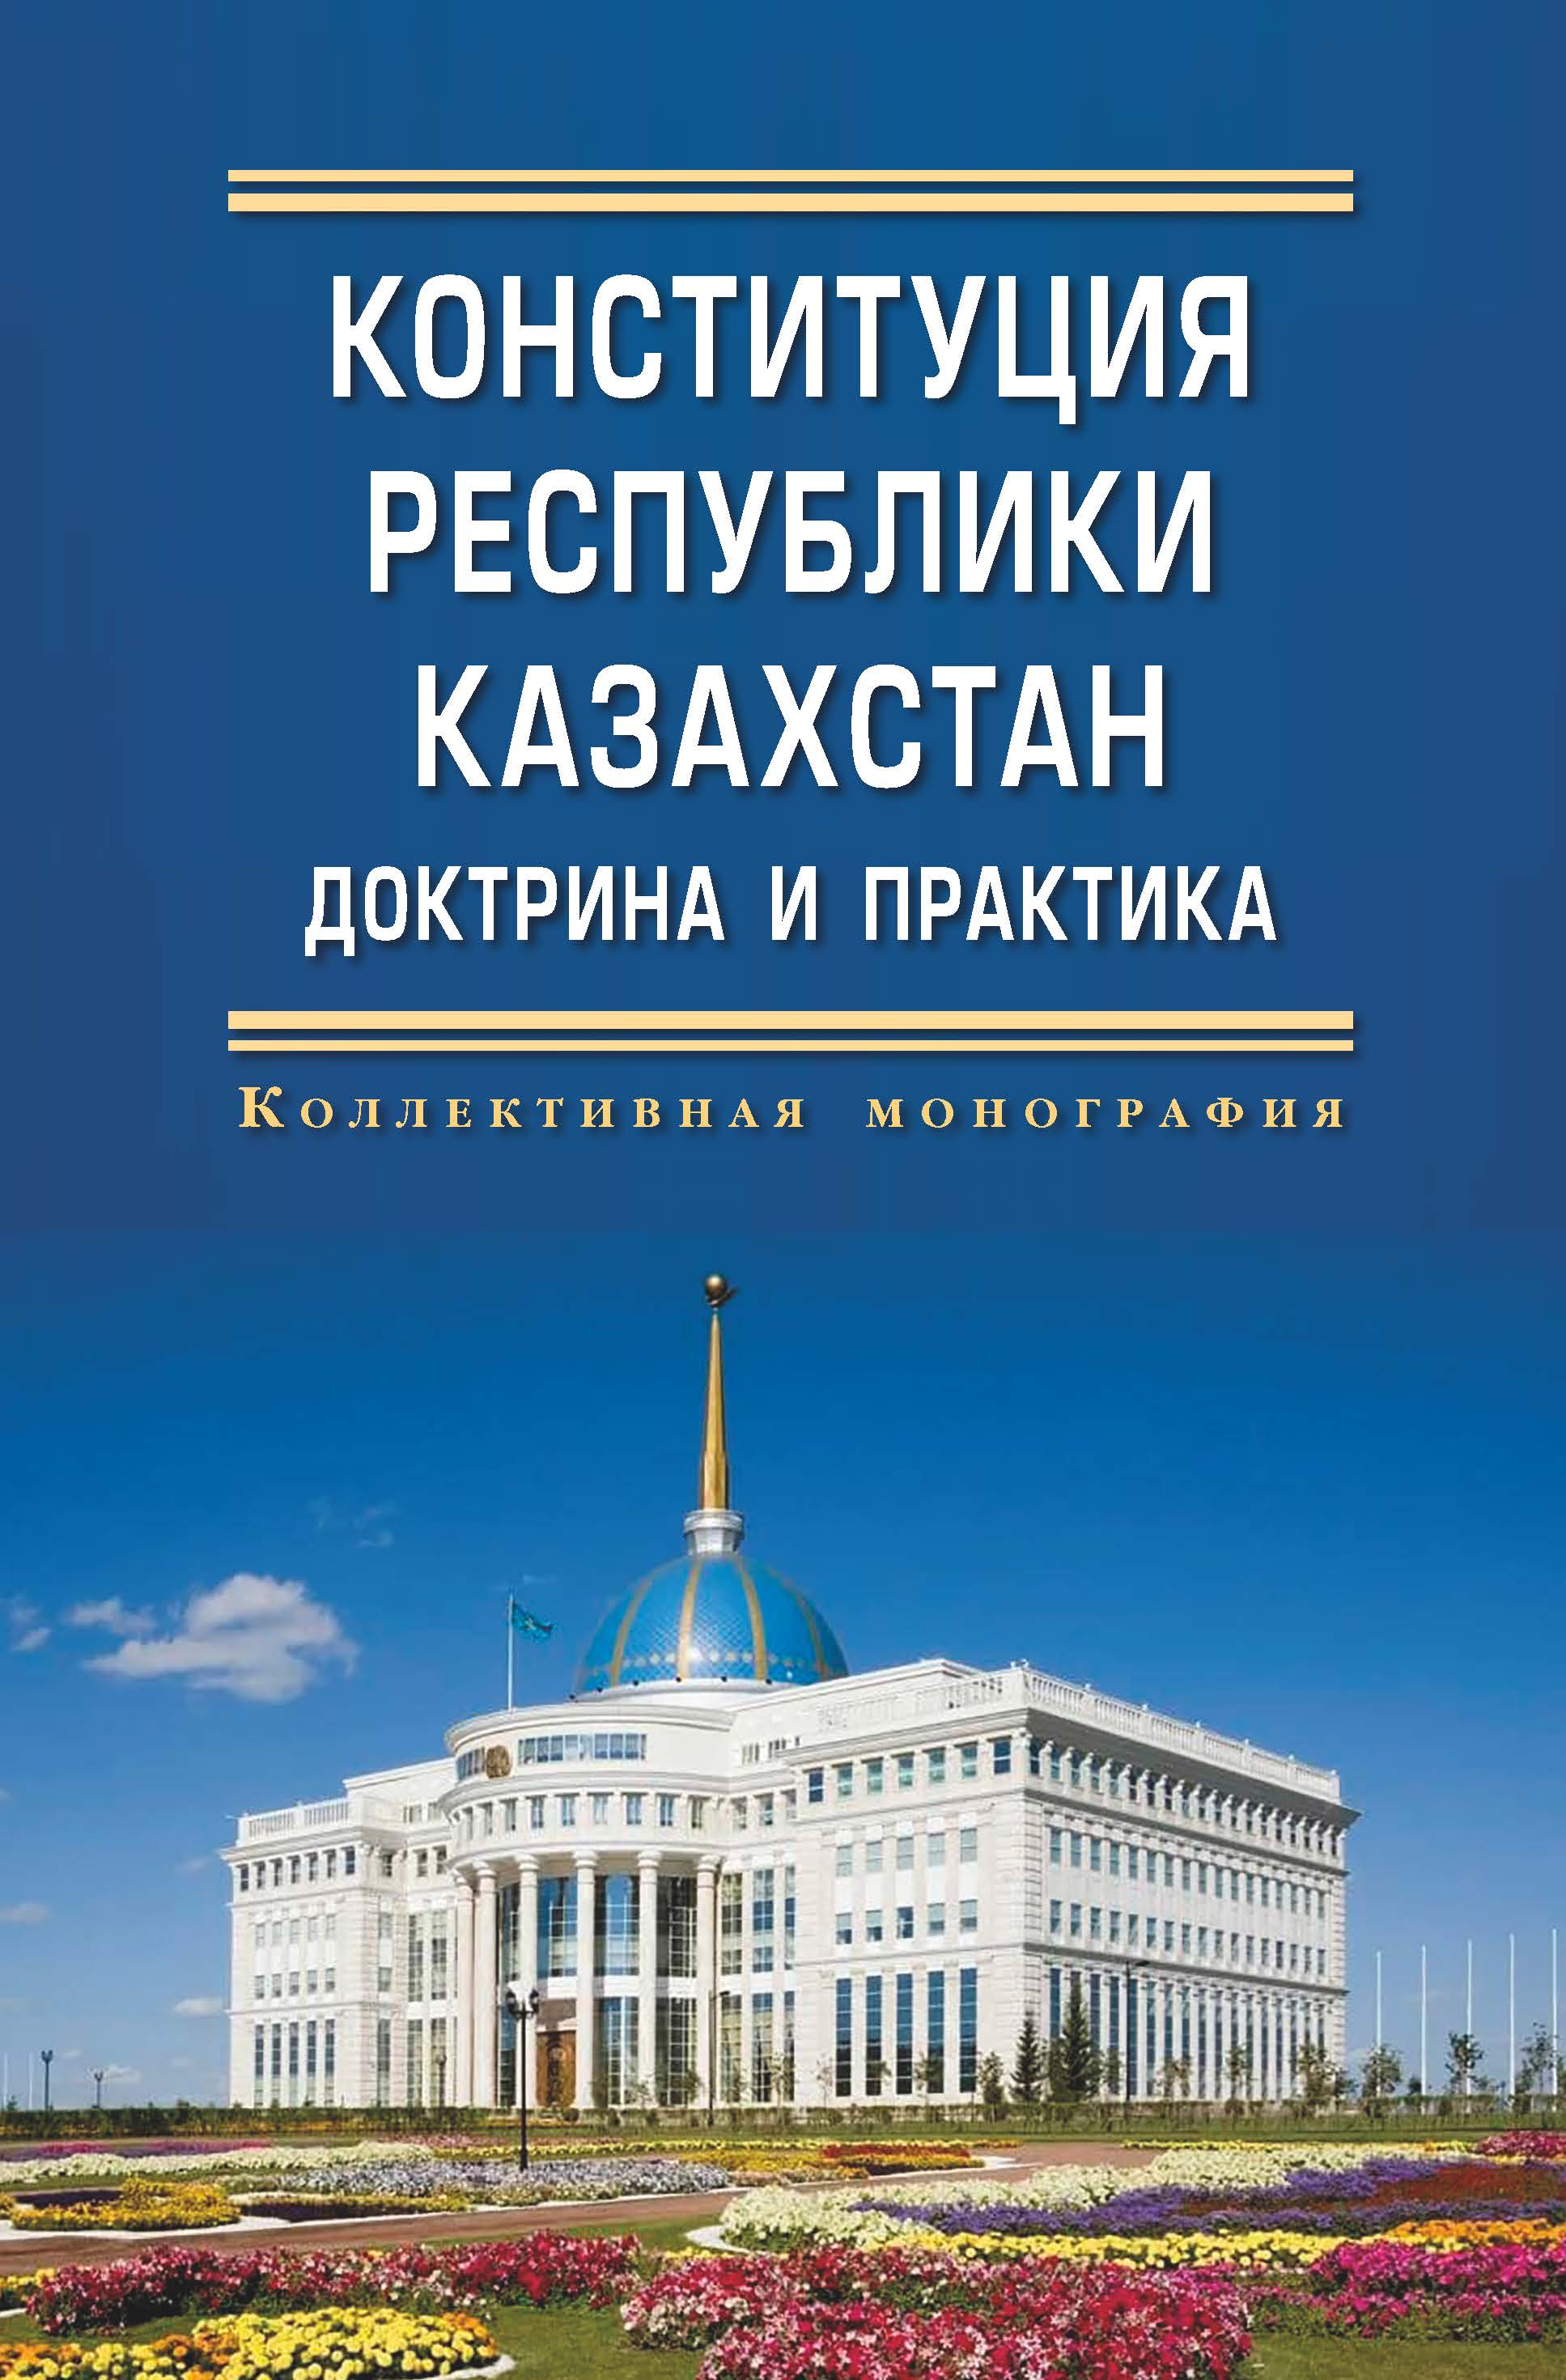 CONSTITUTION OF THE REPUBLIC OF KAZAKHSTAN: DOCTRINE AND PRACTICE (TO THE 25TH ANNIVERSARY OF THE CONSTITUTION OF THE REPUBLIC OF KAZAKHSTAN)